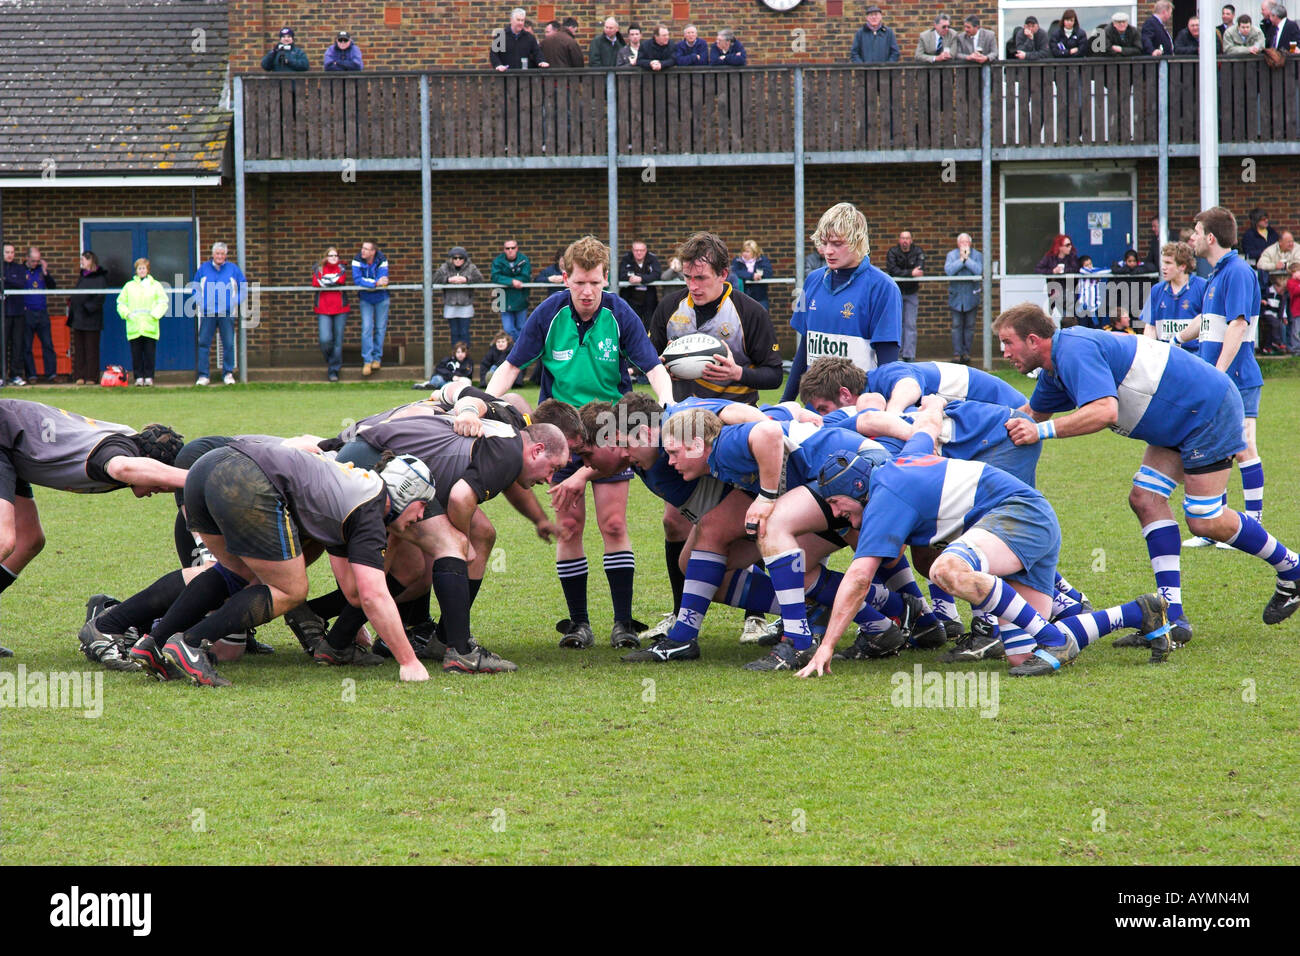 Rugby scrum. - Stock Image